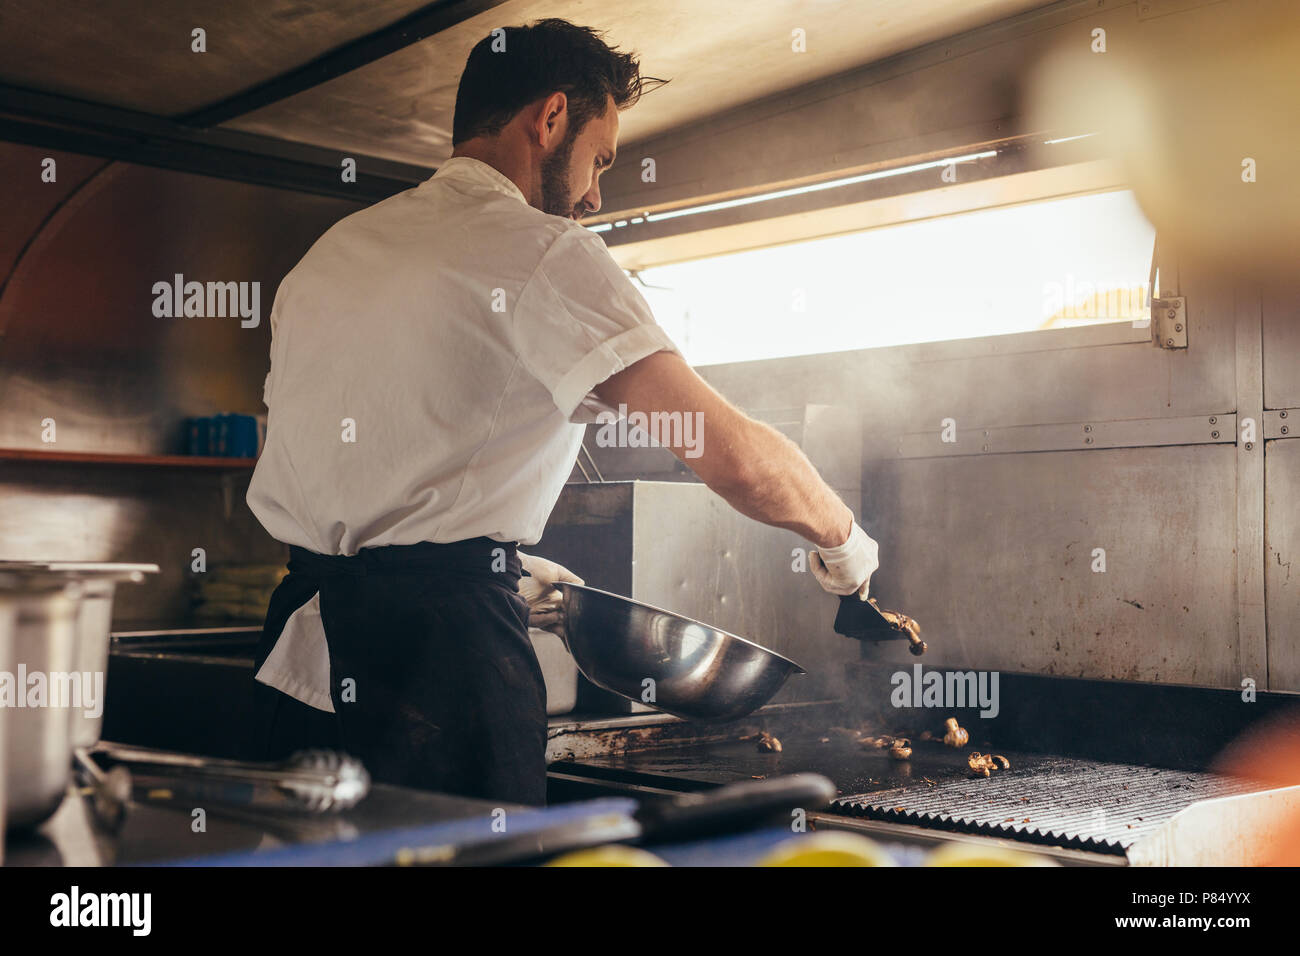 Male cook making some food in a food truck parked under a tree. Man chopping vegetable on his food truck. - Stock Image